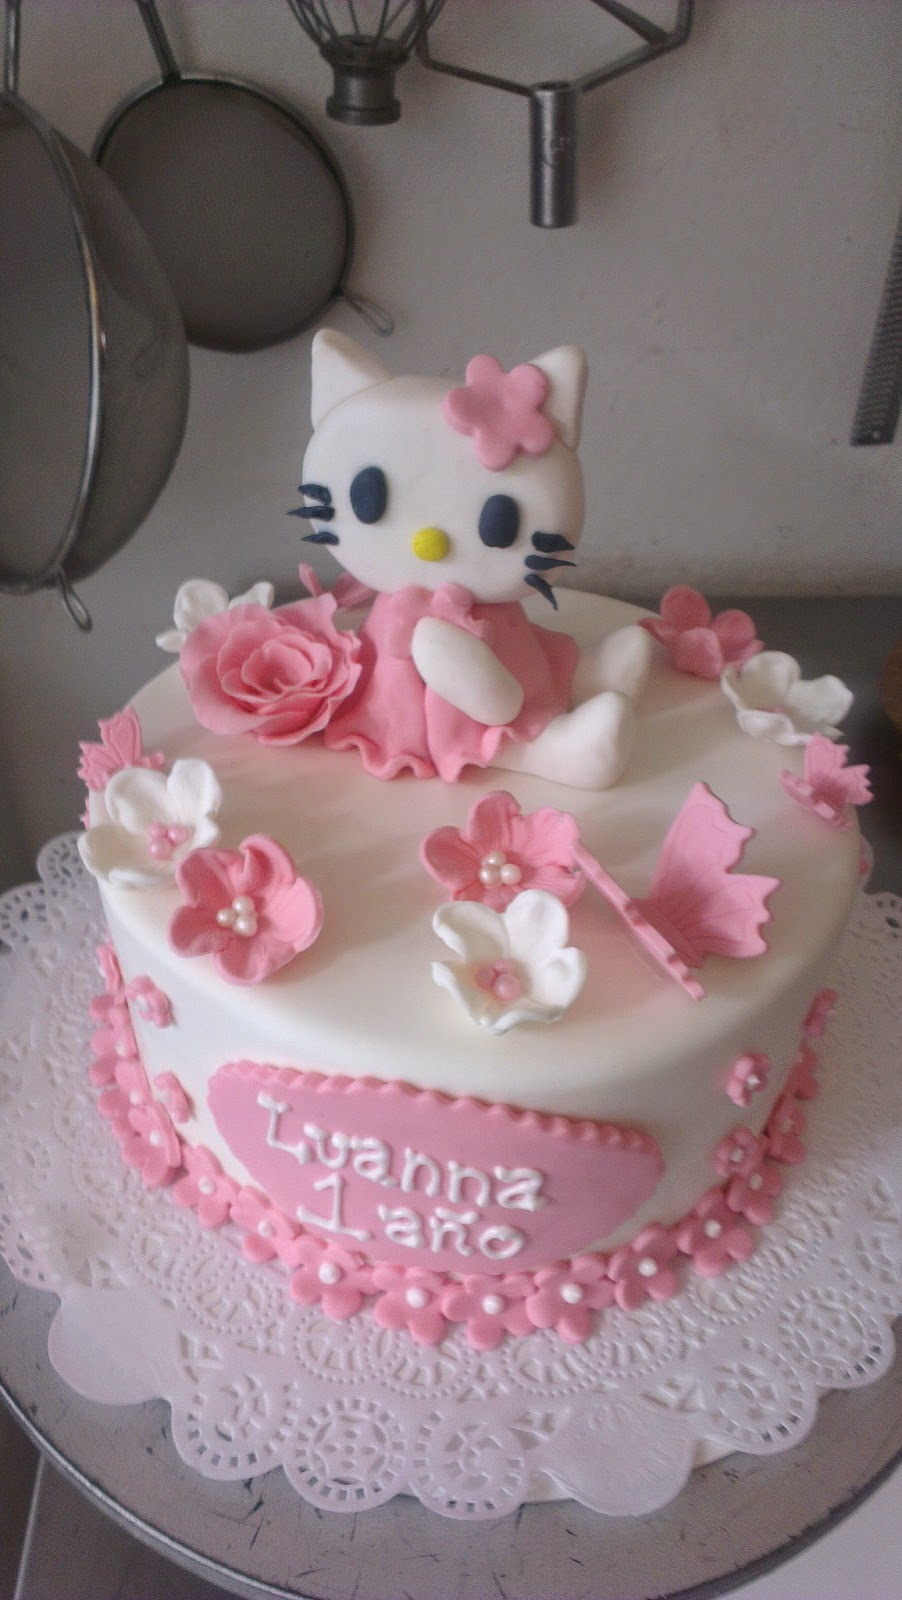 Cute HELLO KITTY Cake For A 1 Year Old Girl